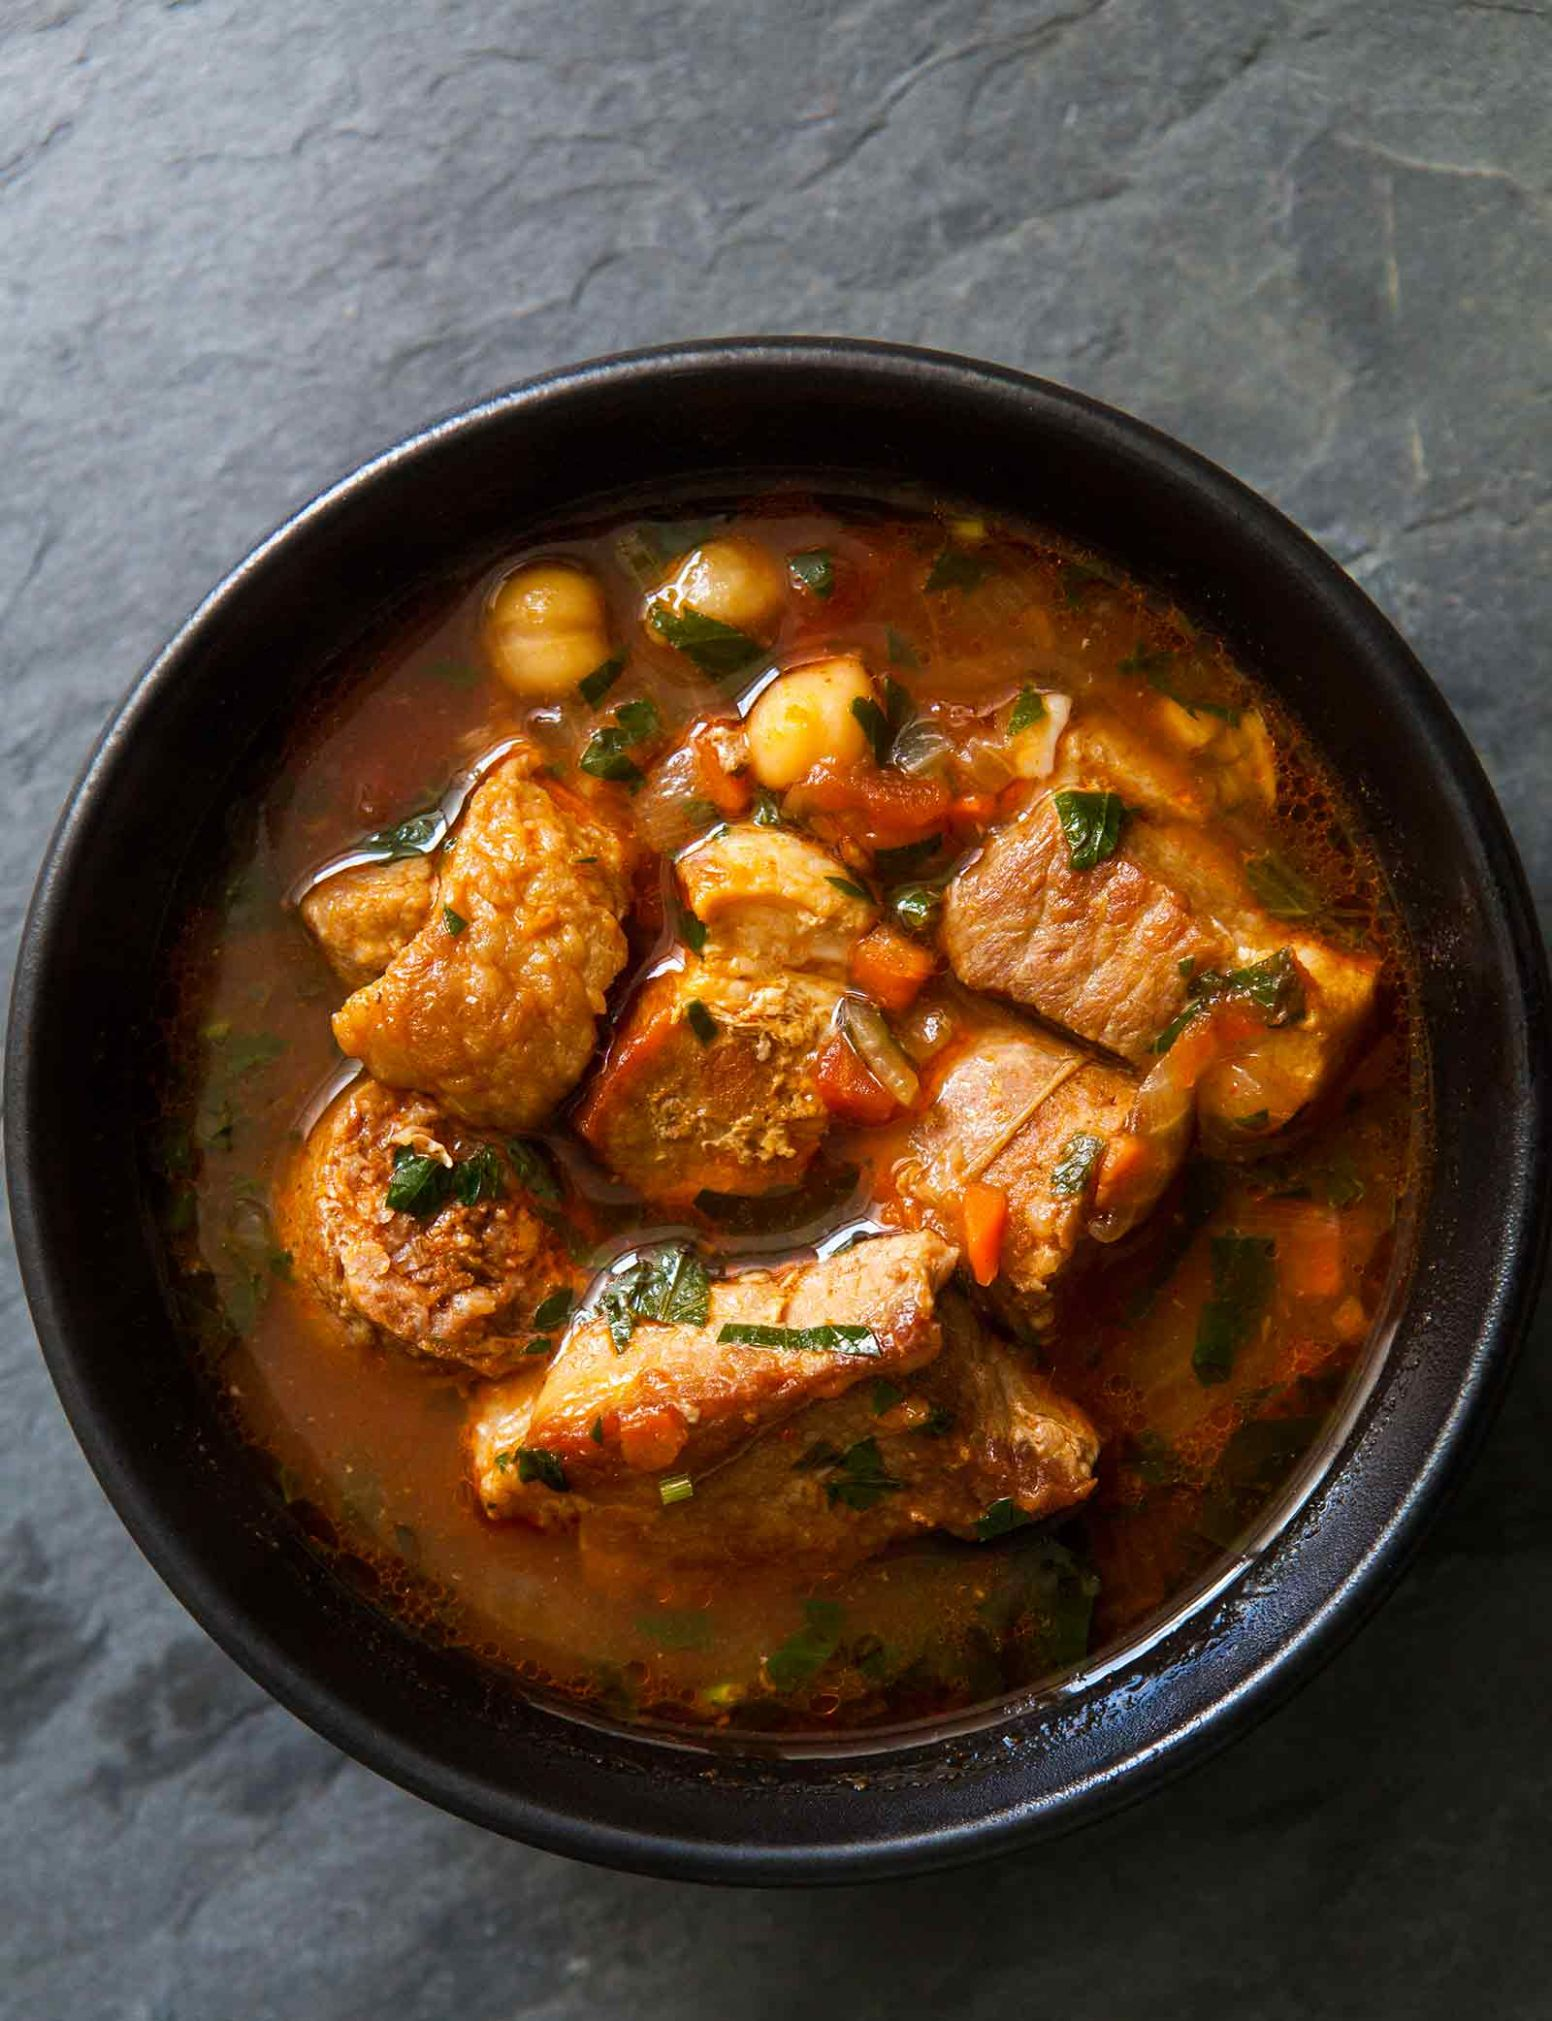 Spicy Pork Stew with Chickpeas and Sausage - Recipes Using Pork Stew Meat